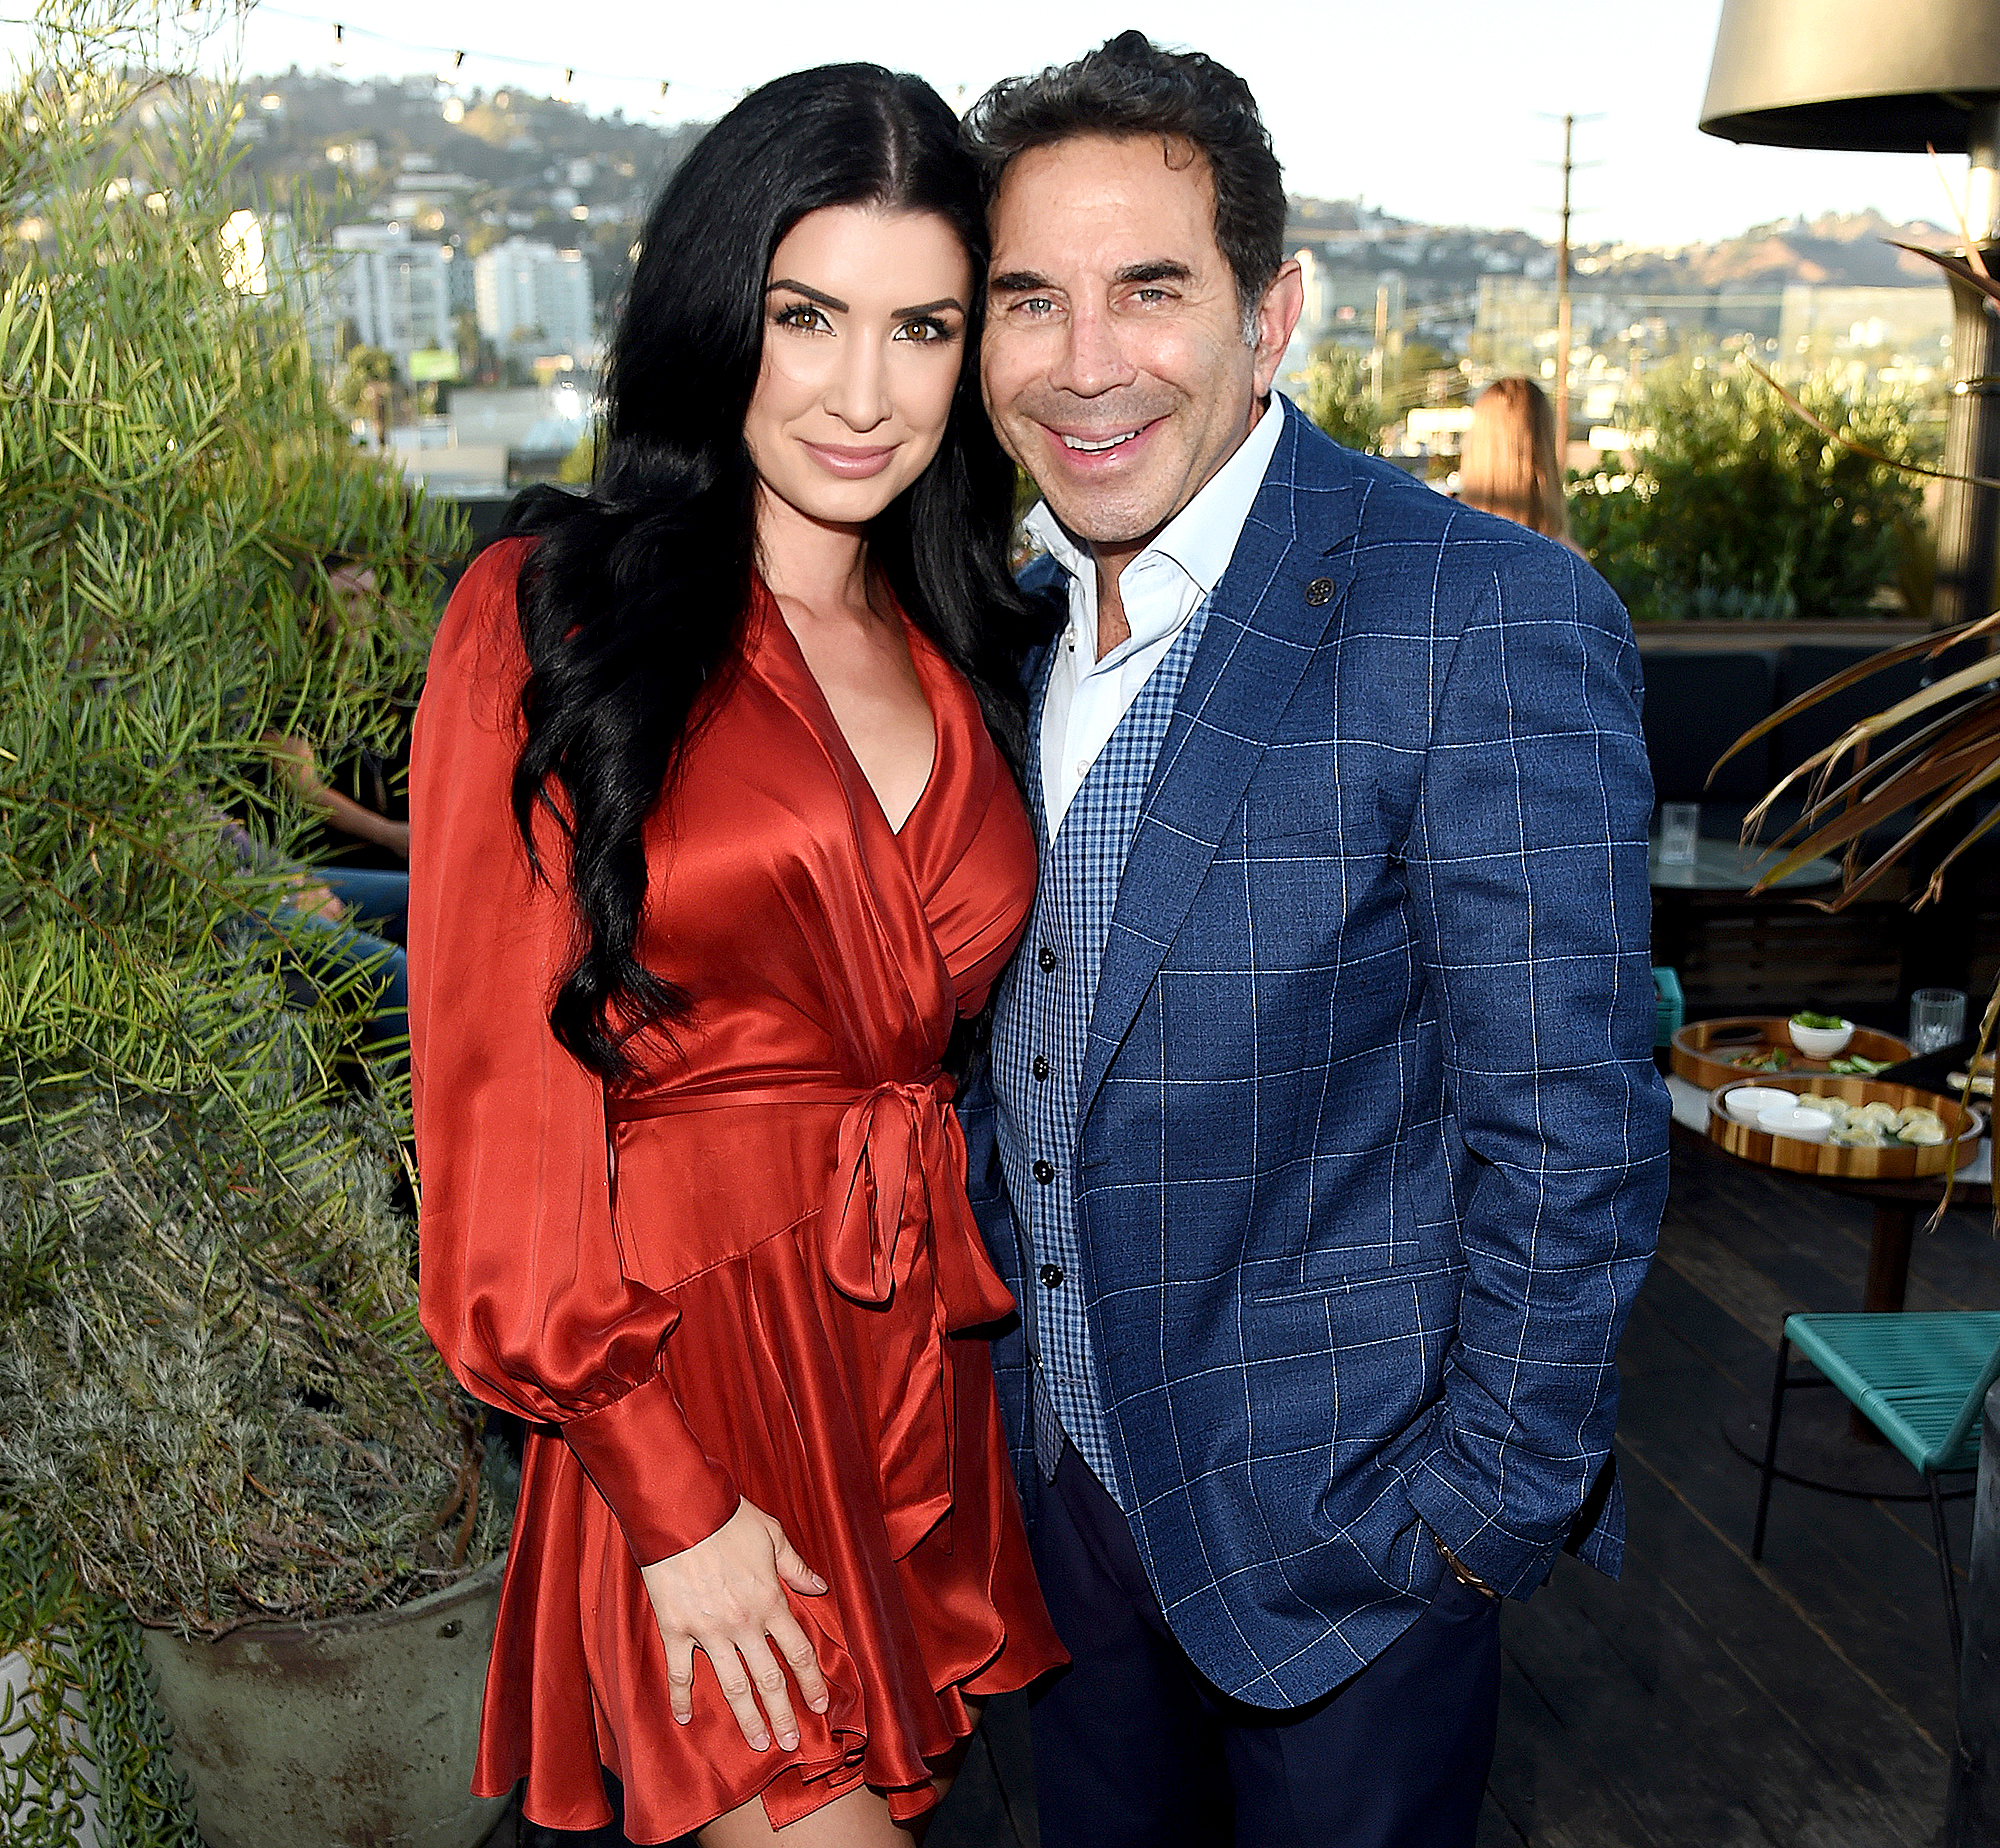 Dr.-Paul-Nassif-and-Wife-Brittany-Pattakos-Plan-Expanding-the-Family